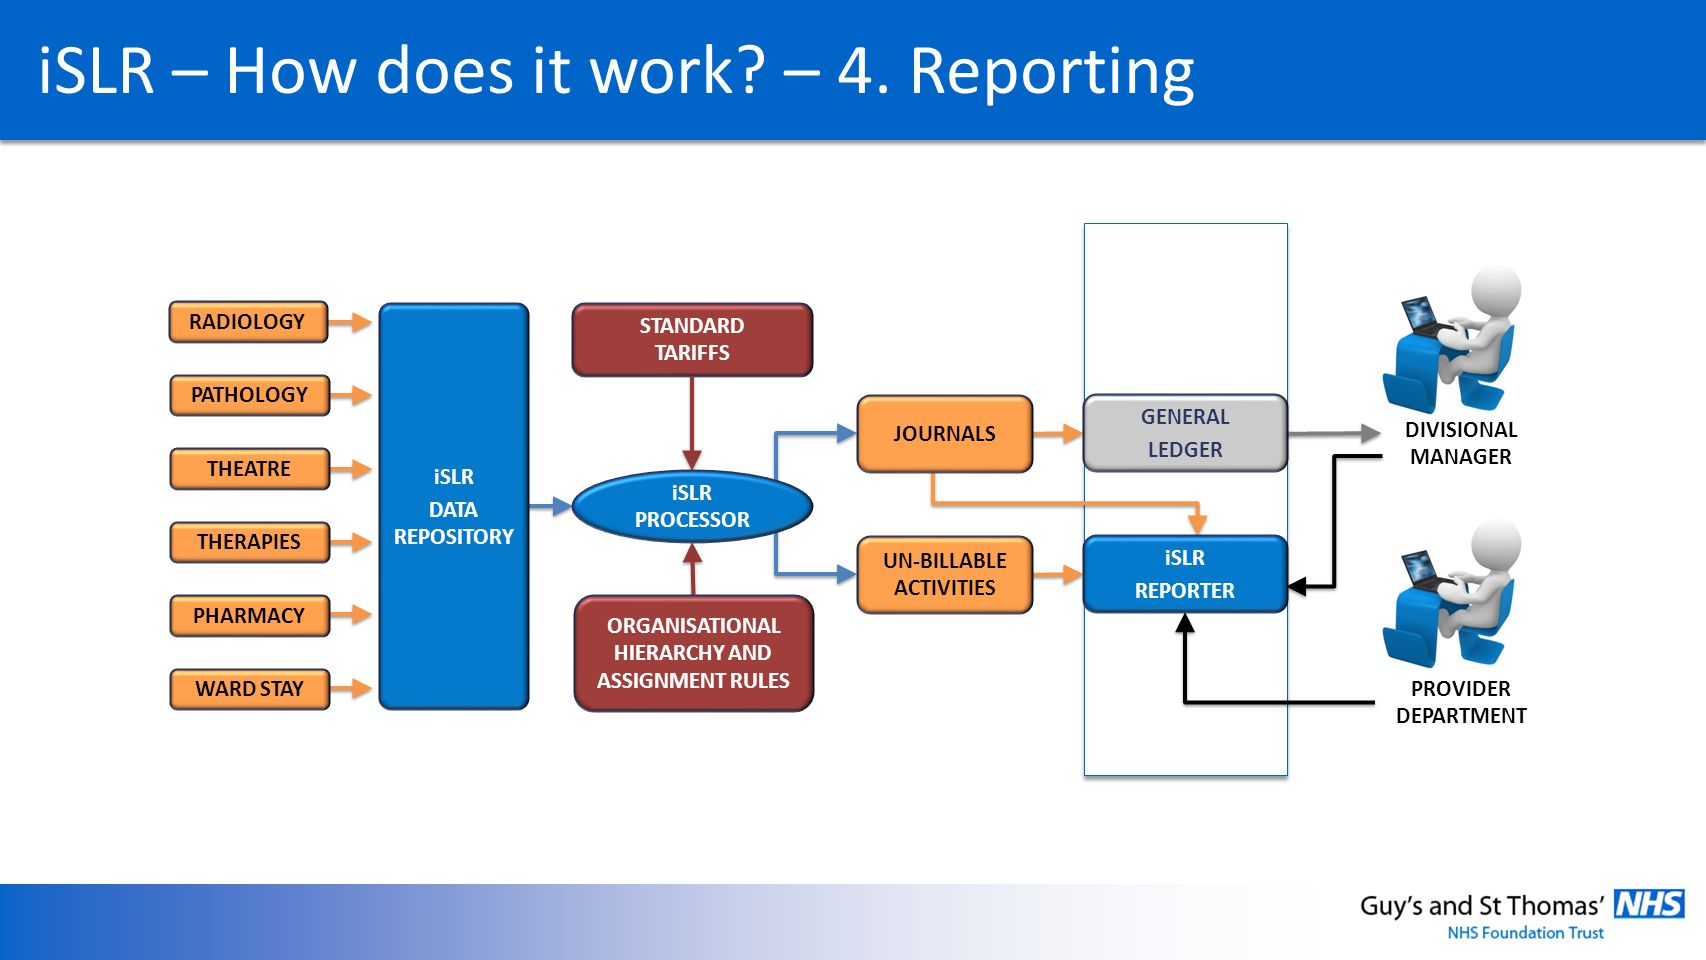 iSLR – How does it work – 4. Reporting